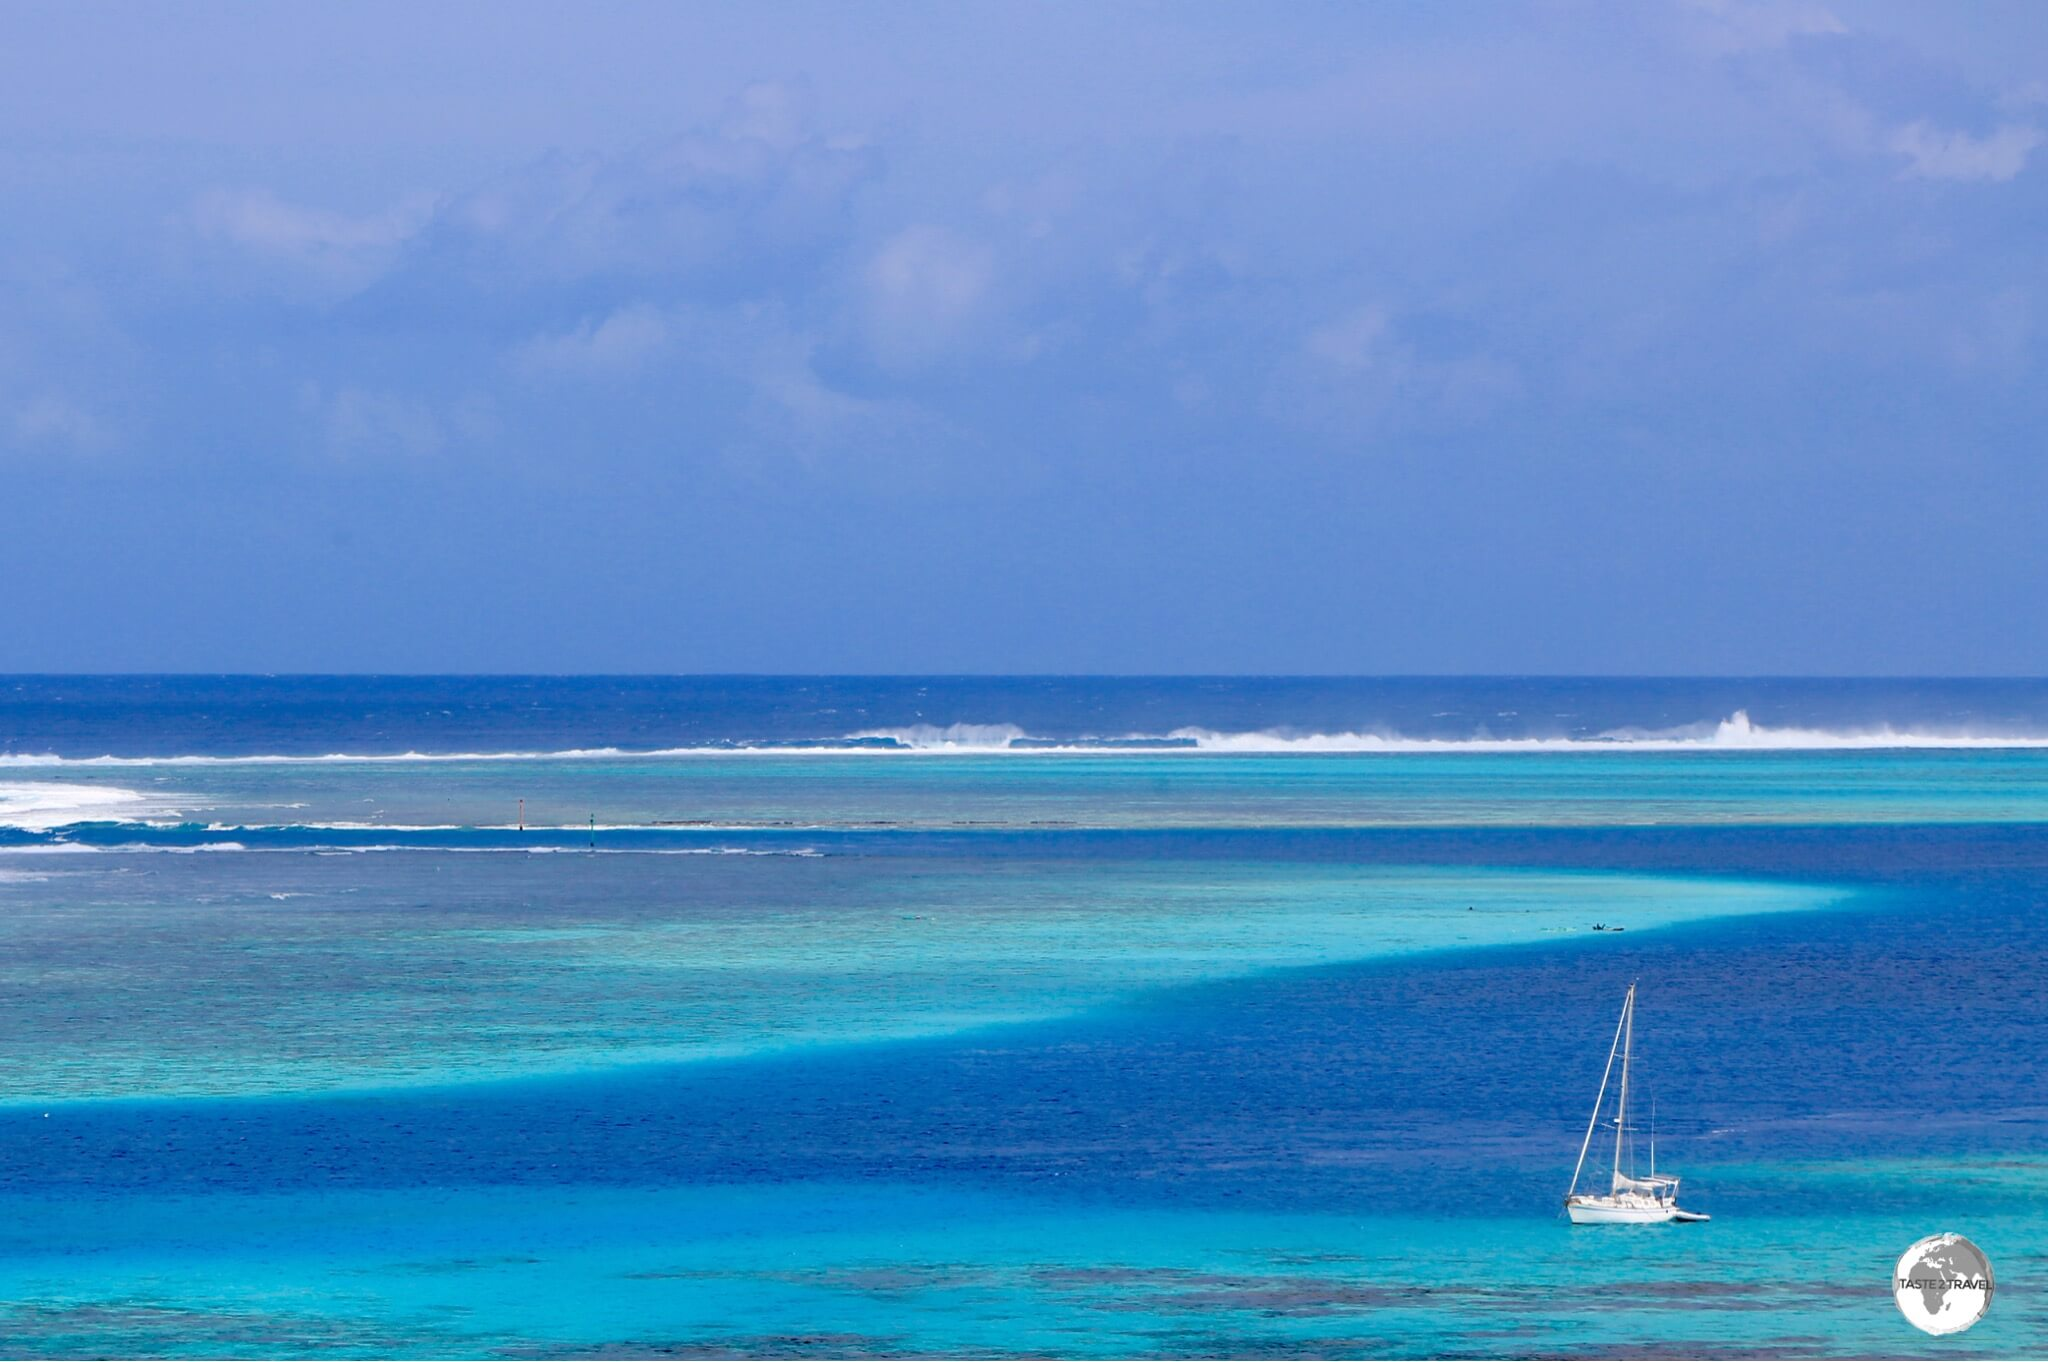 The dazzling blue waters of the Moorea lagoon.